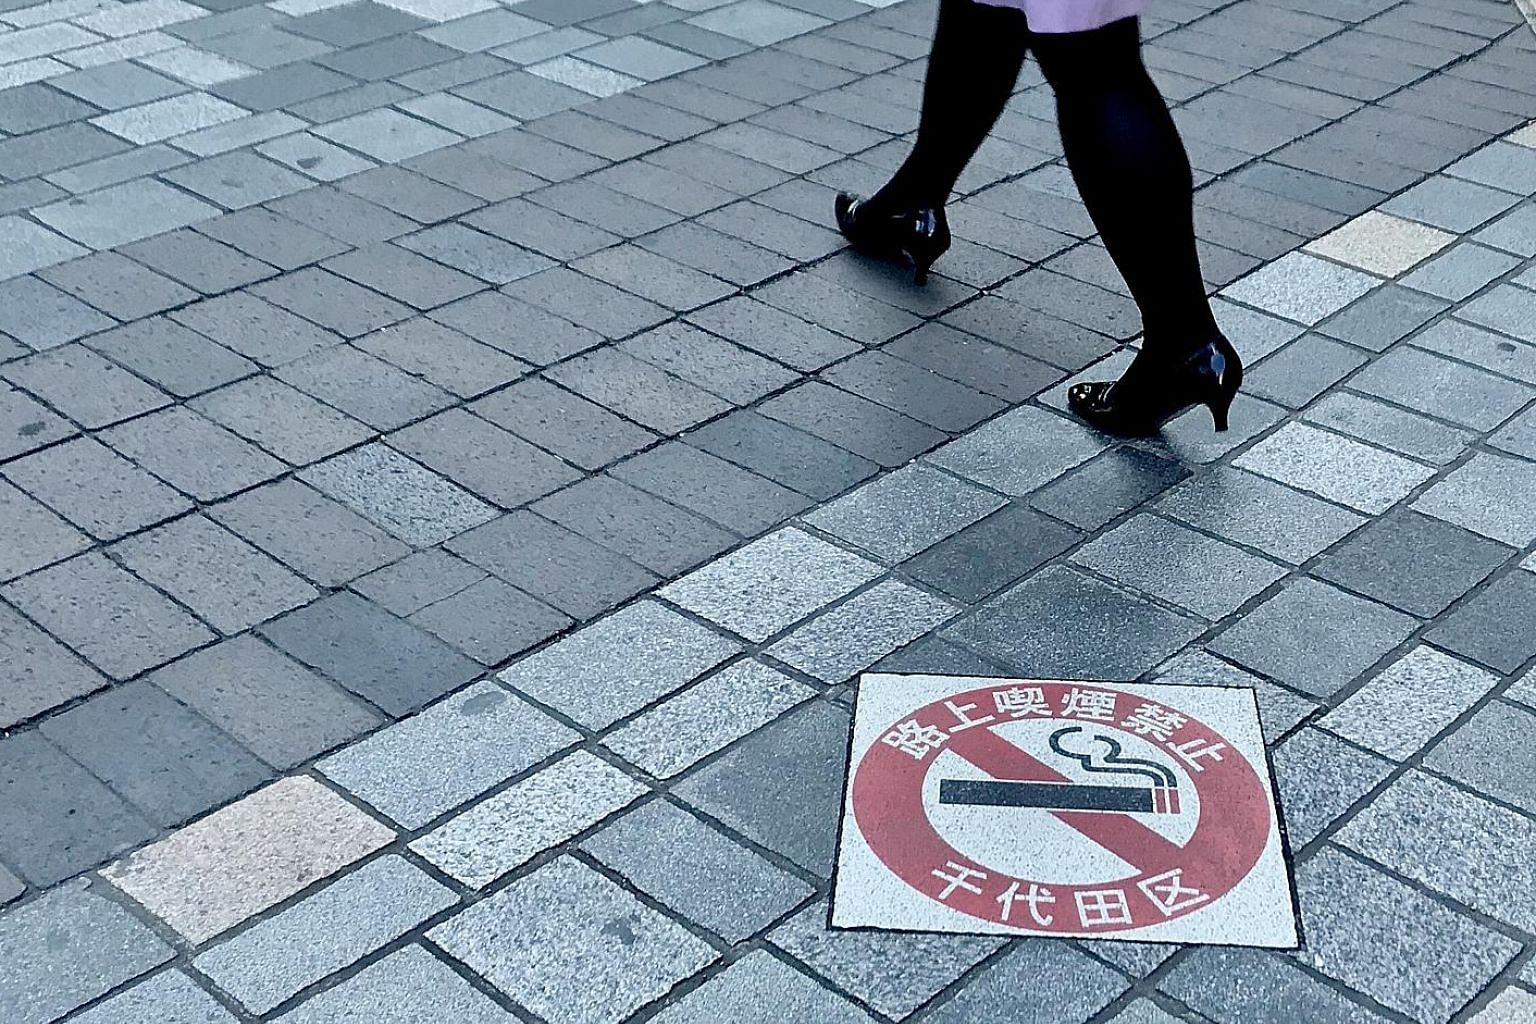 """A """"No Smoking On The Streets"""" sign in Tokyo's Chiyoda ward, the first of the Japanese capital's 23 wards to outlaw public smoking in 2002, with offenders facing fines of 2,000 yen (S$25)."""